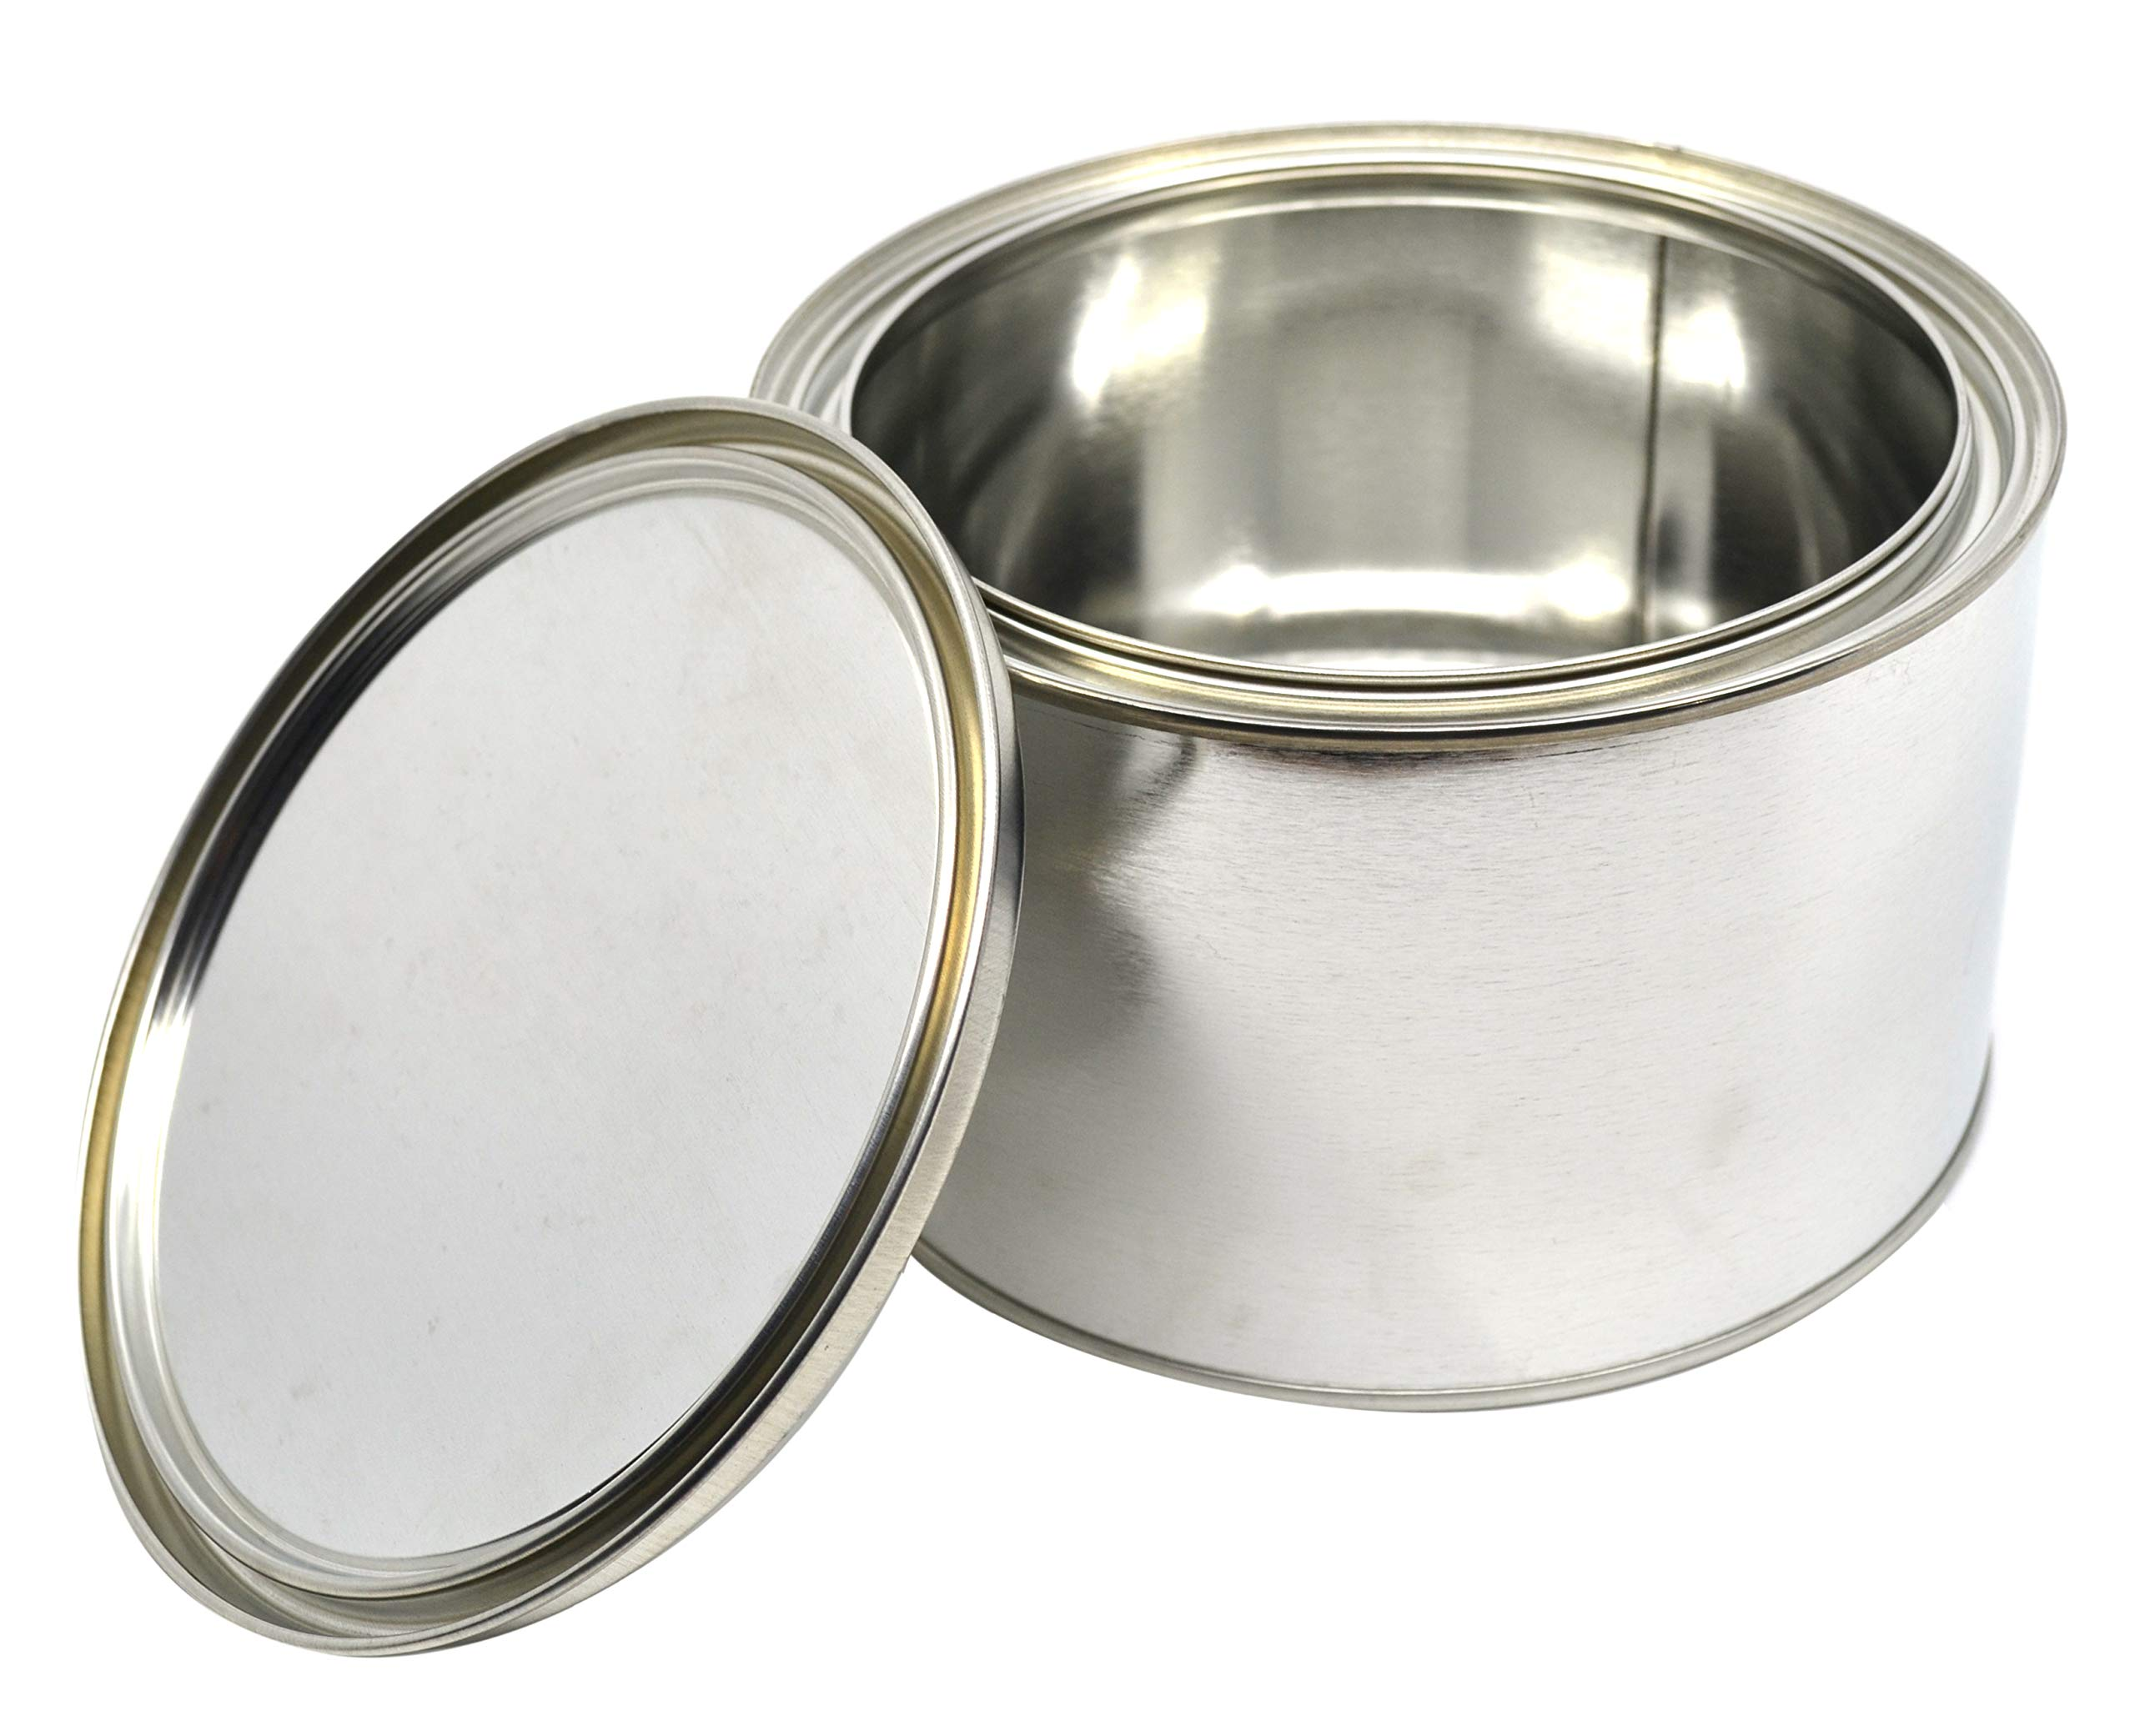 1/2 Gallon Grease Can with Lid - Made in The USA from Partially Recycled Metal - 100% Recyclable